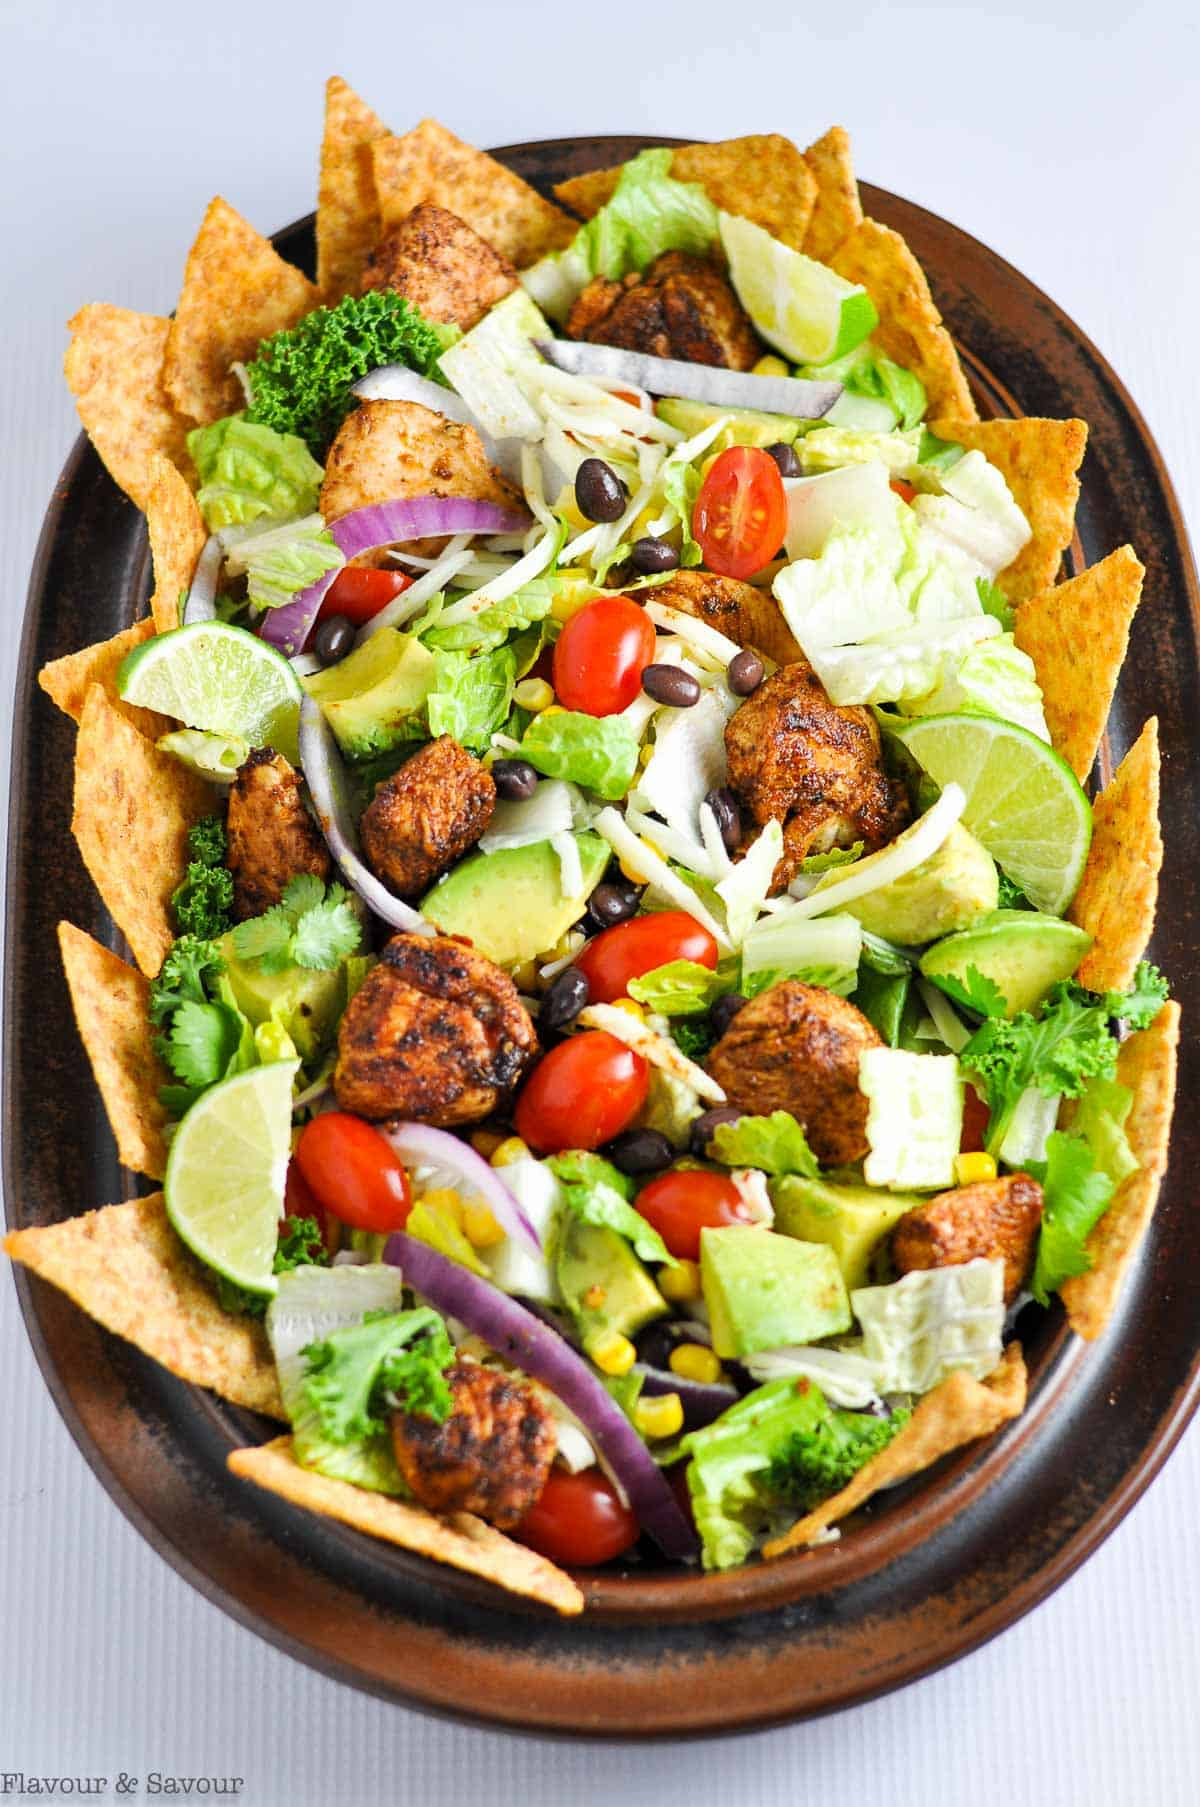 Overhead view of Chopped Chicken Taco Salad on an oval brown platter